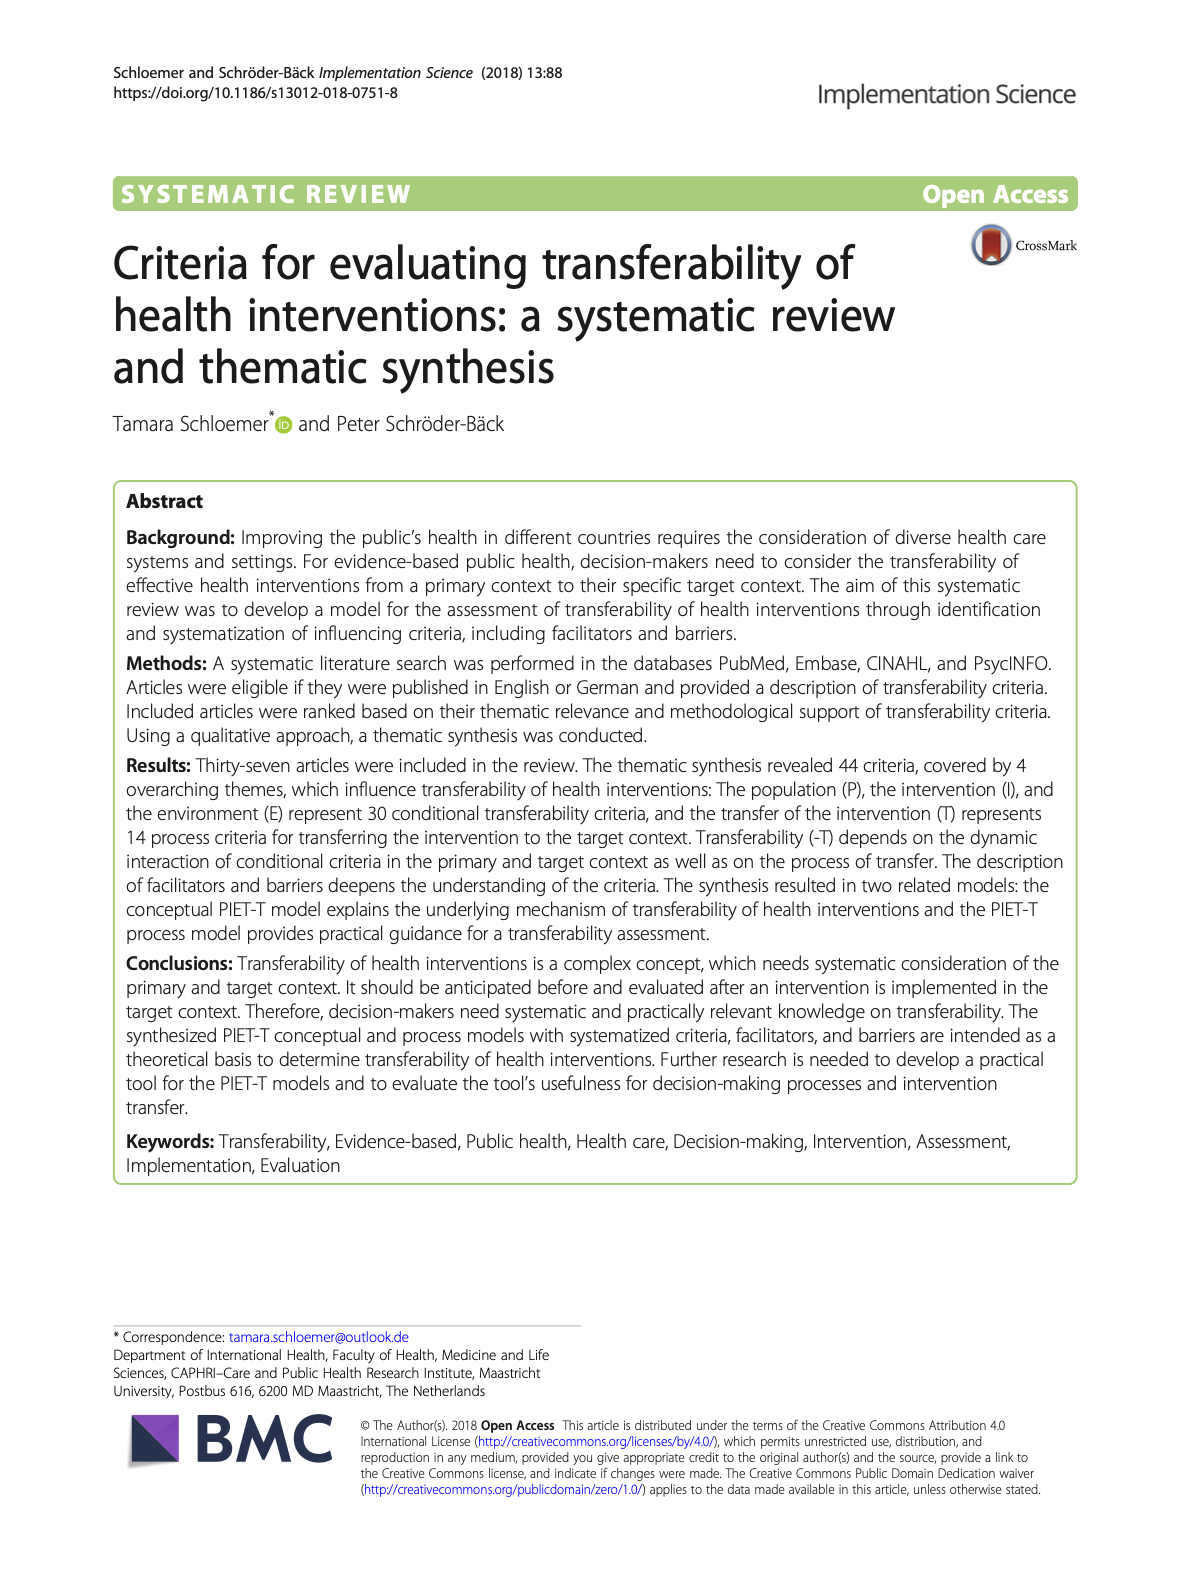 Criteria for evaluating transferability of health interventions